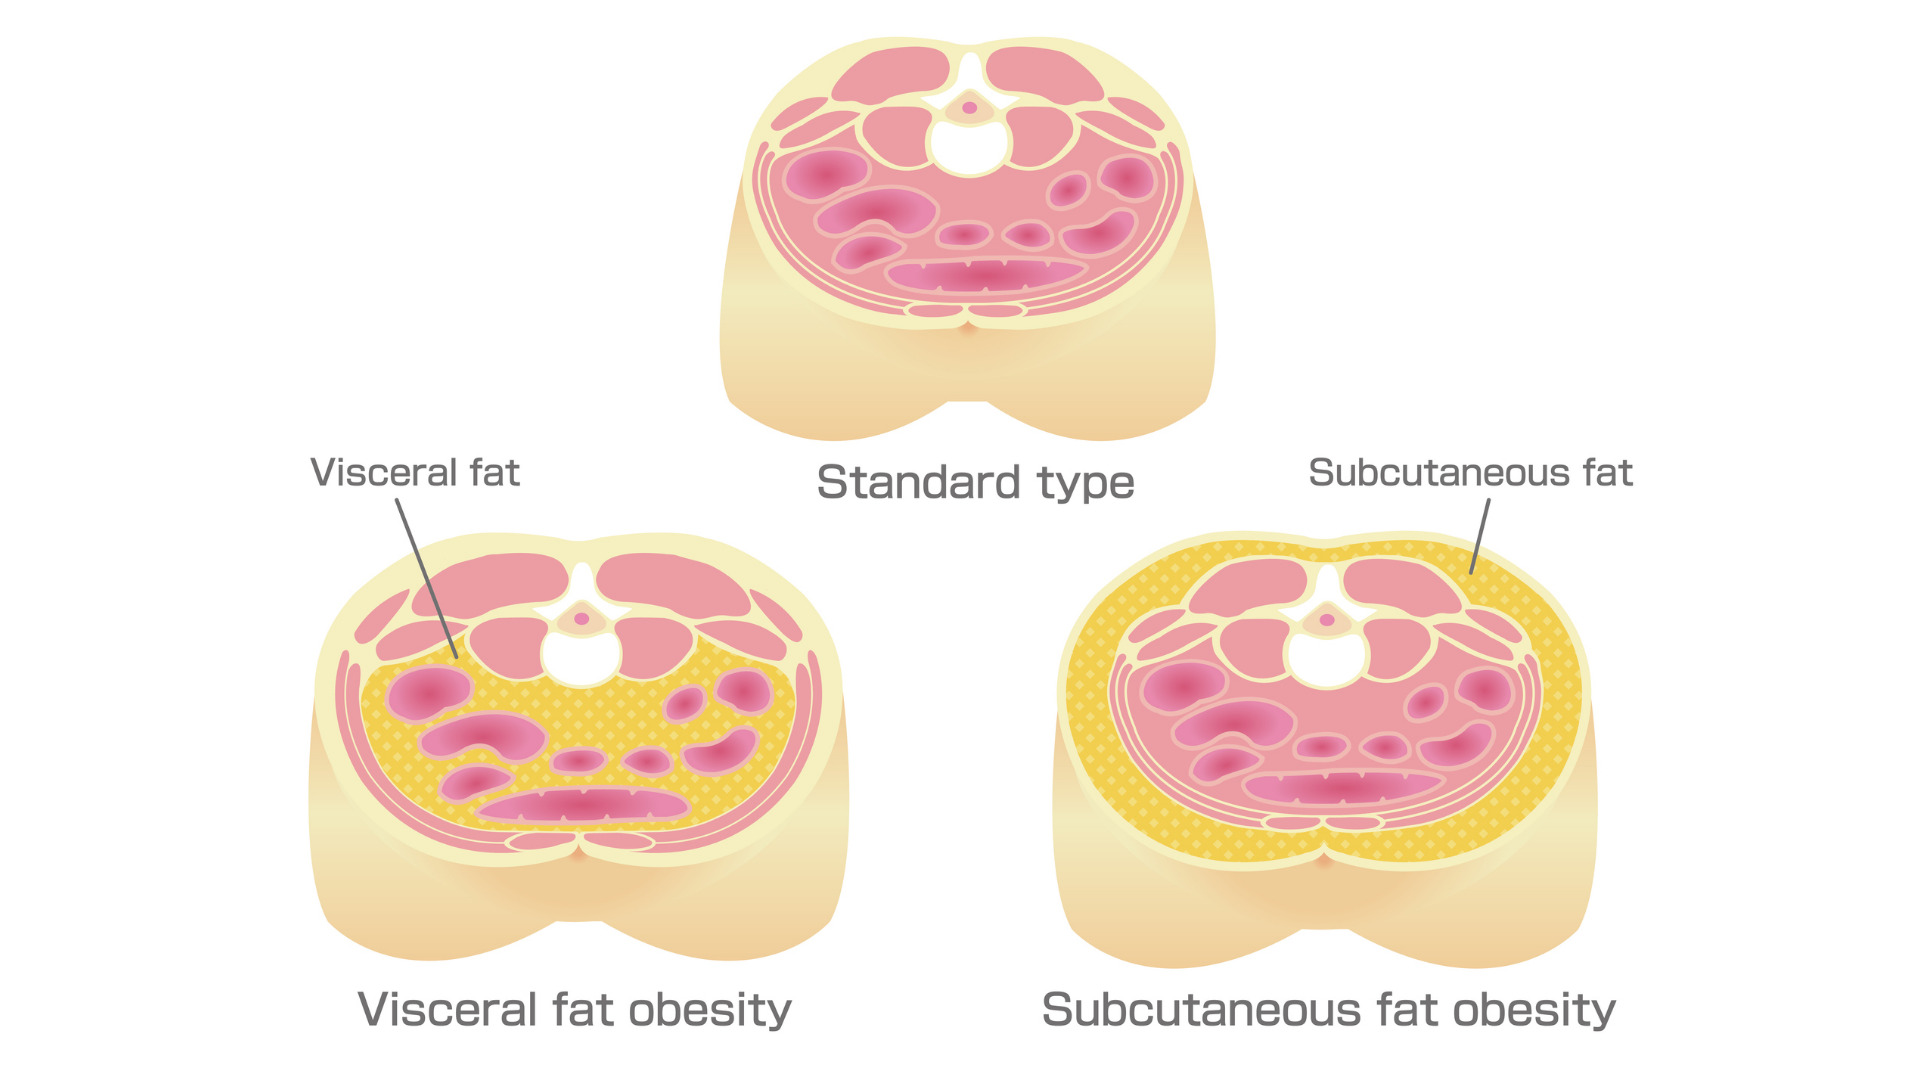 A cross section of the abdomen - visceral fat (yellow) is behind the muscles of the abdominal wall (pink) and surrounds internal organs.